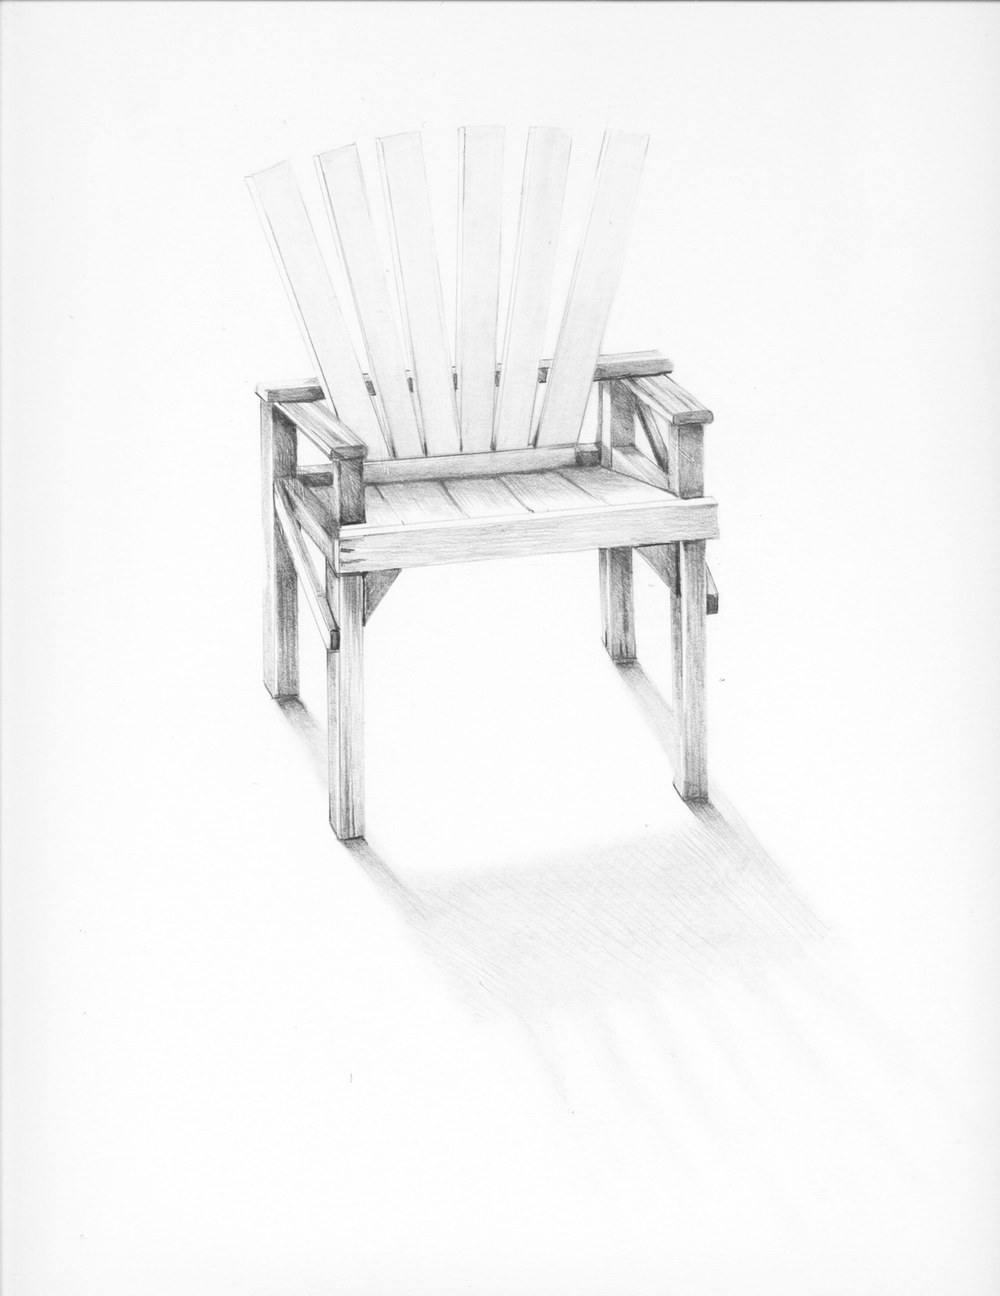 Sheila Ghidini Garden Chair, 2013 graphite on paper 17 x 14 inches